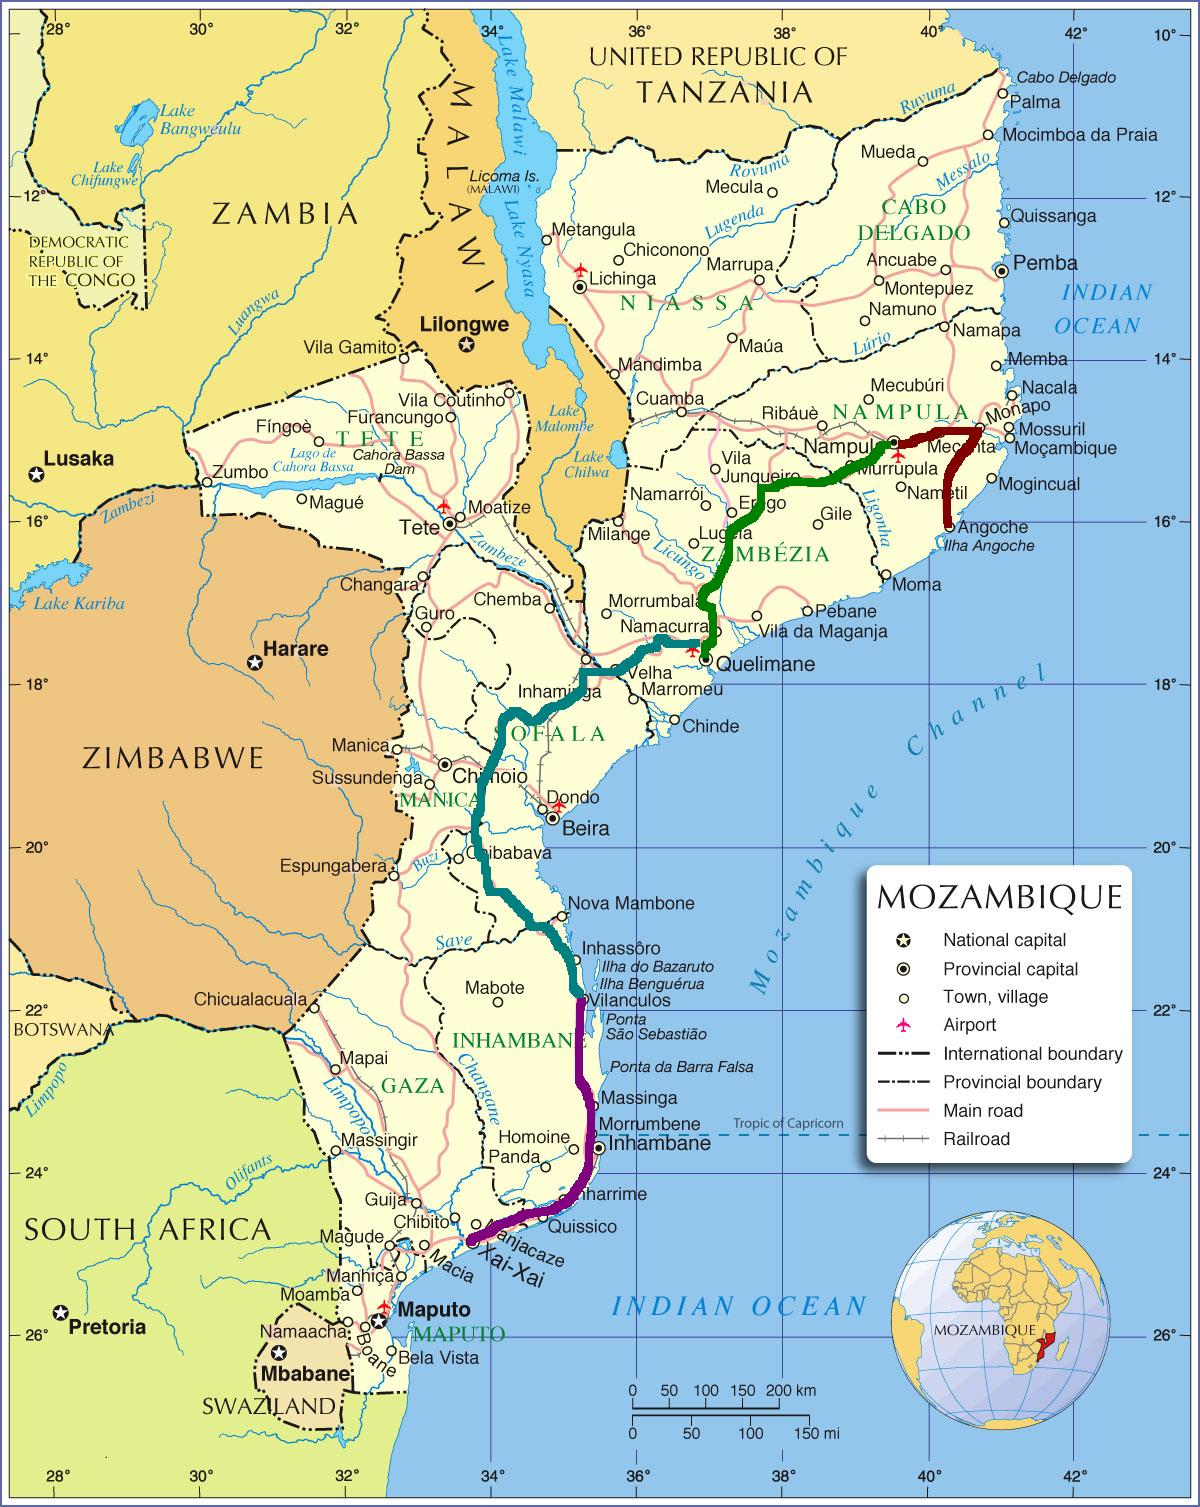 vilanculos is a popular tourist site in inhambane province and also the site of the annual peace corps beer olympics up until my north trip